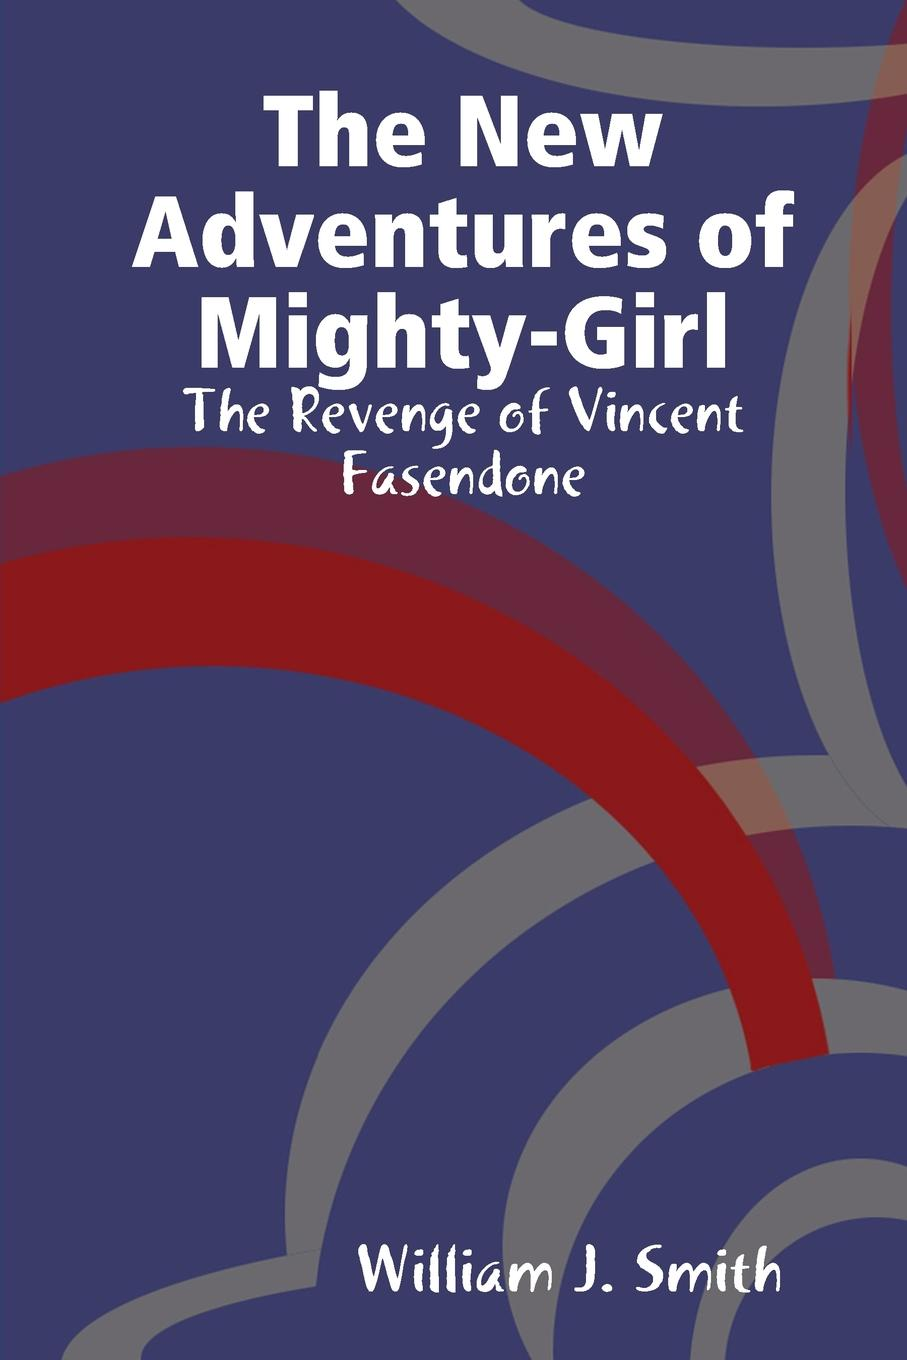 William J. Smith The New Adventures of Mighty-Girl. The Revenge of Vincent Fasendone